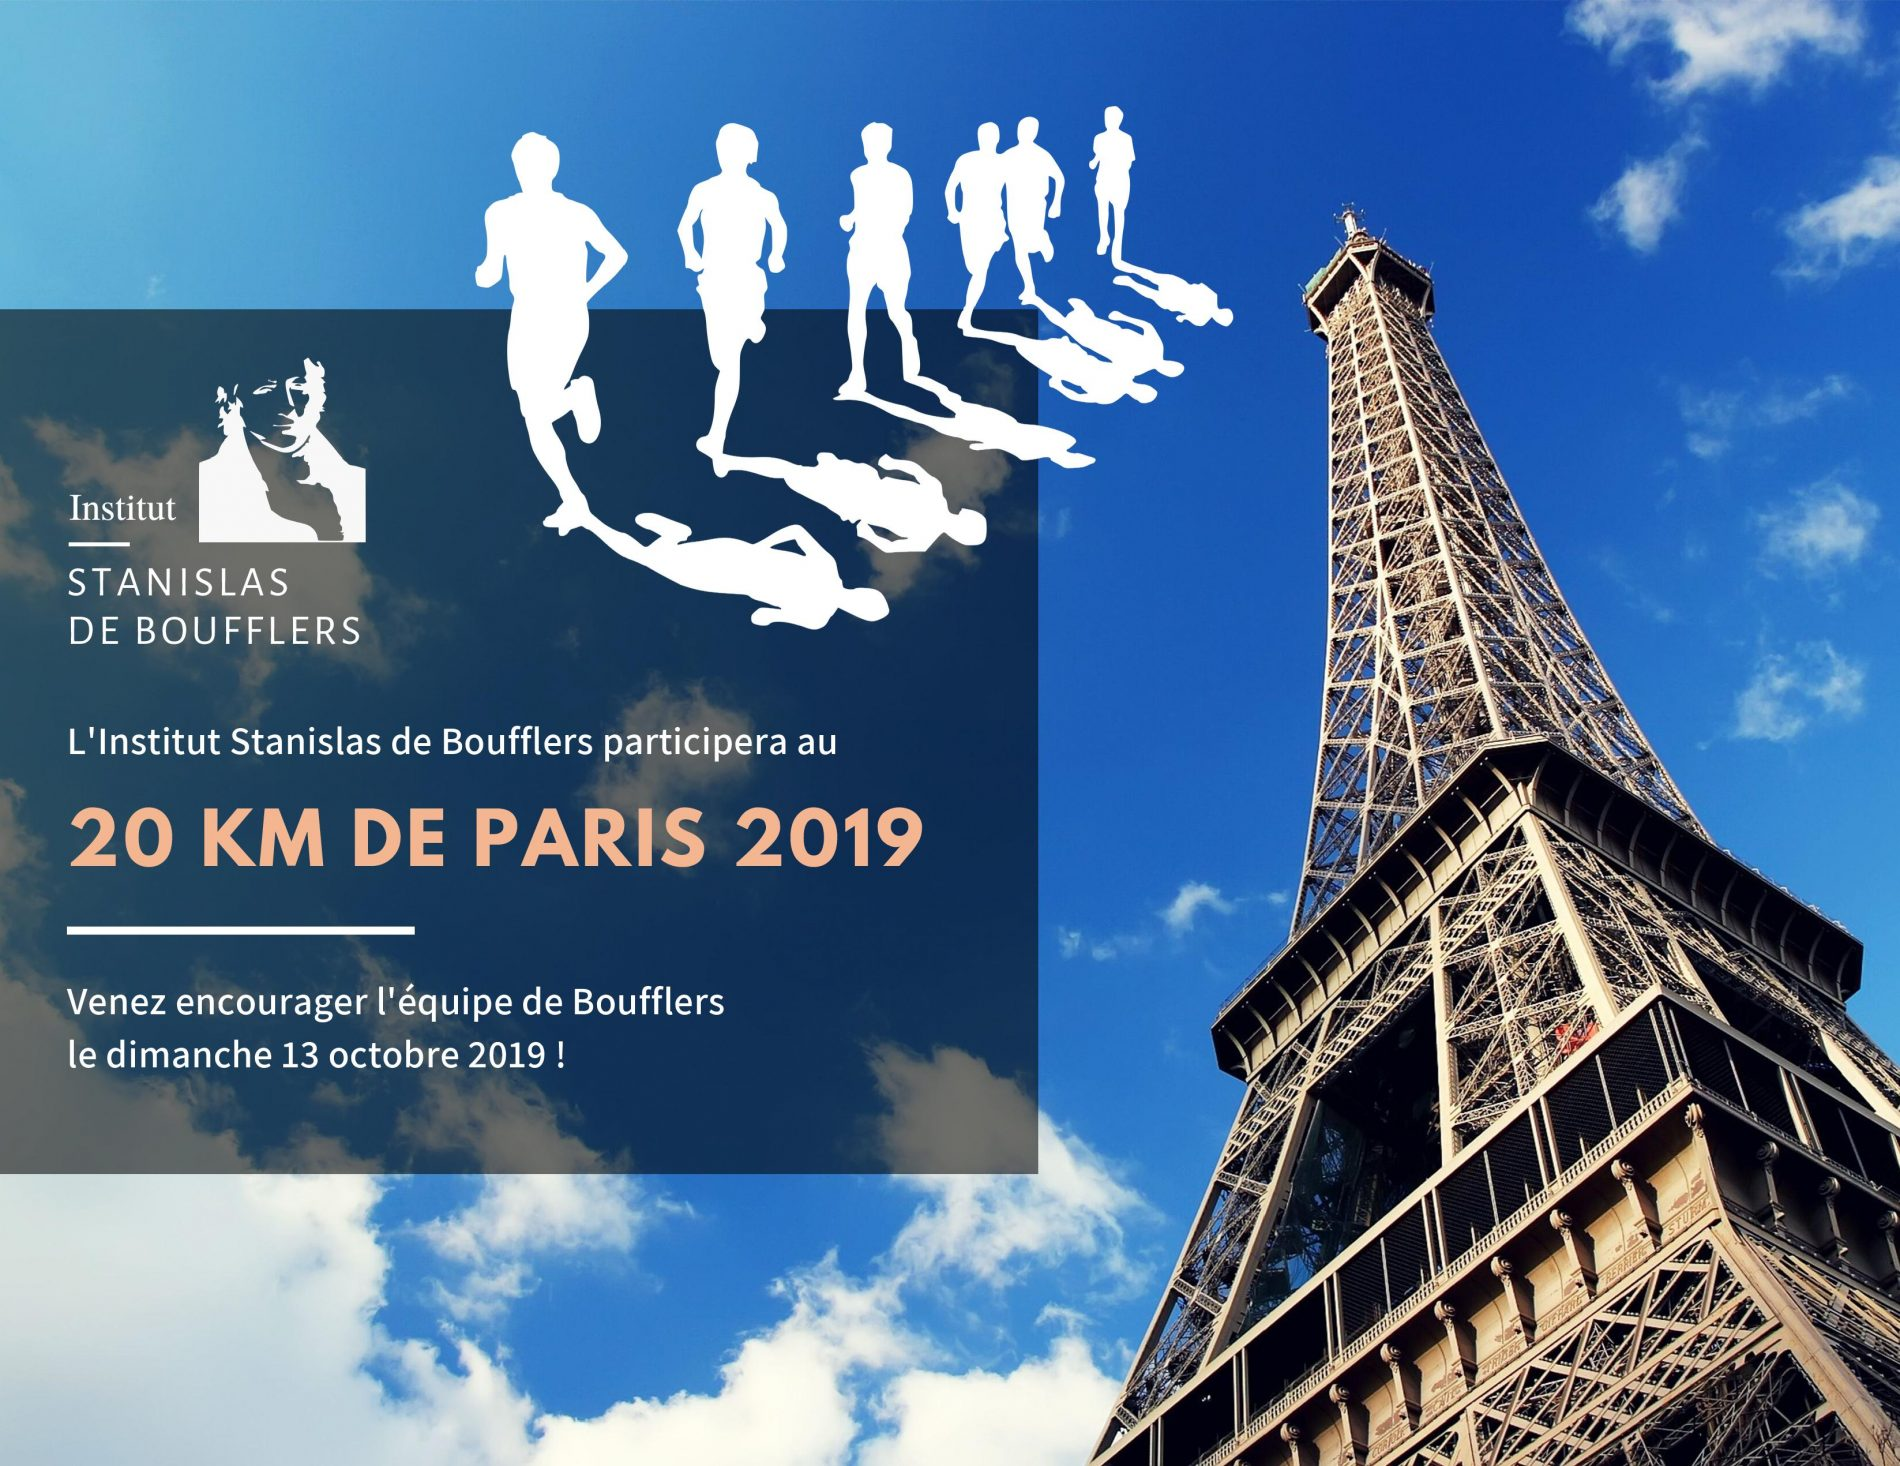 https://www.institutboufflers.org/wp-content/uploads/2019/10/ISB_20km_Paris-page-001.jpg